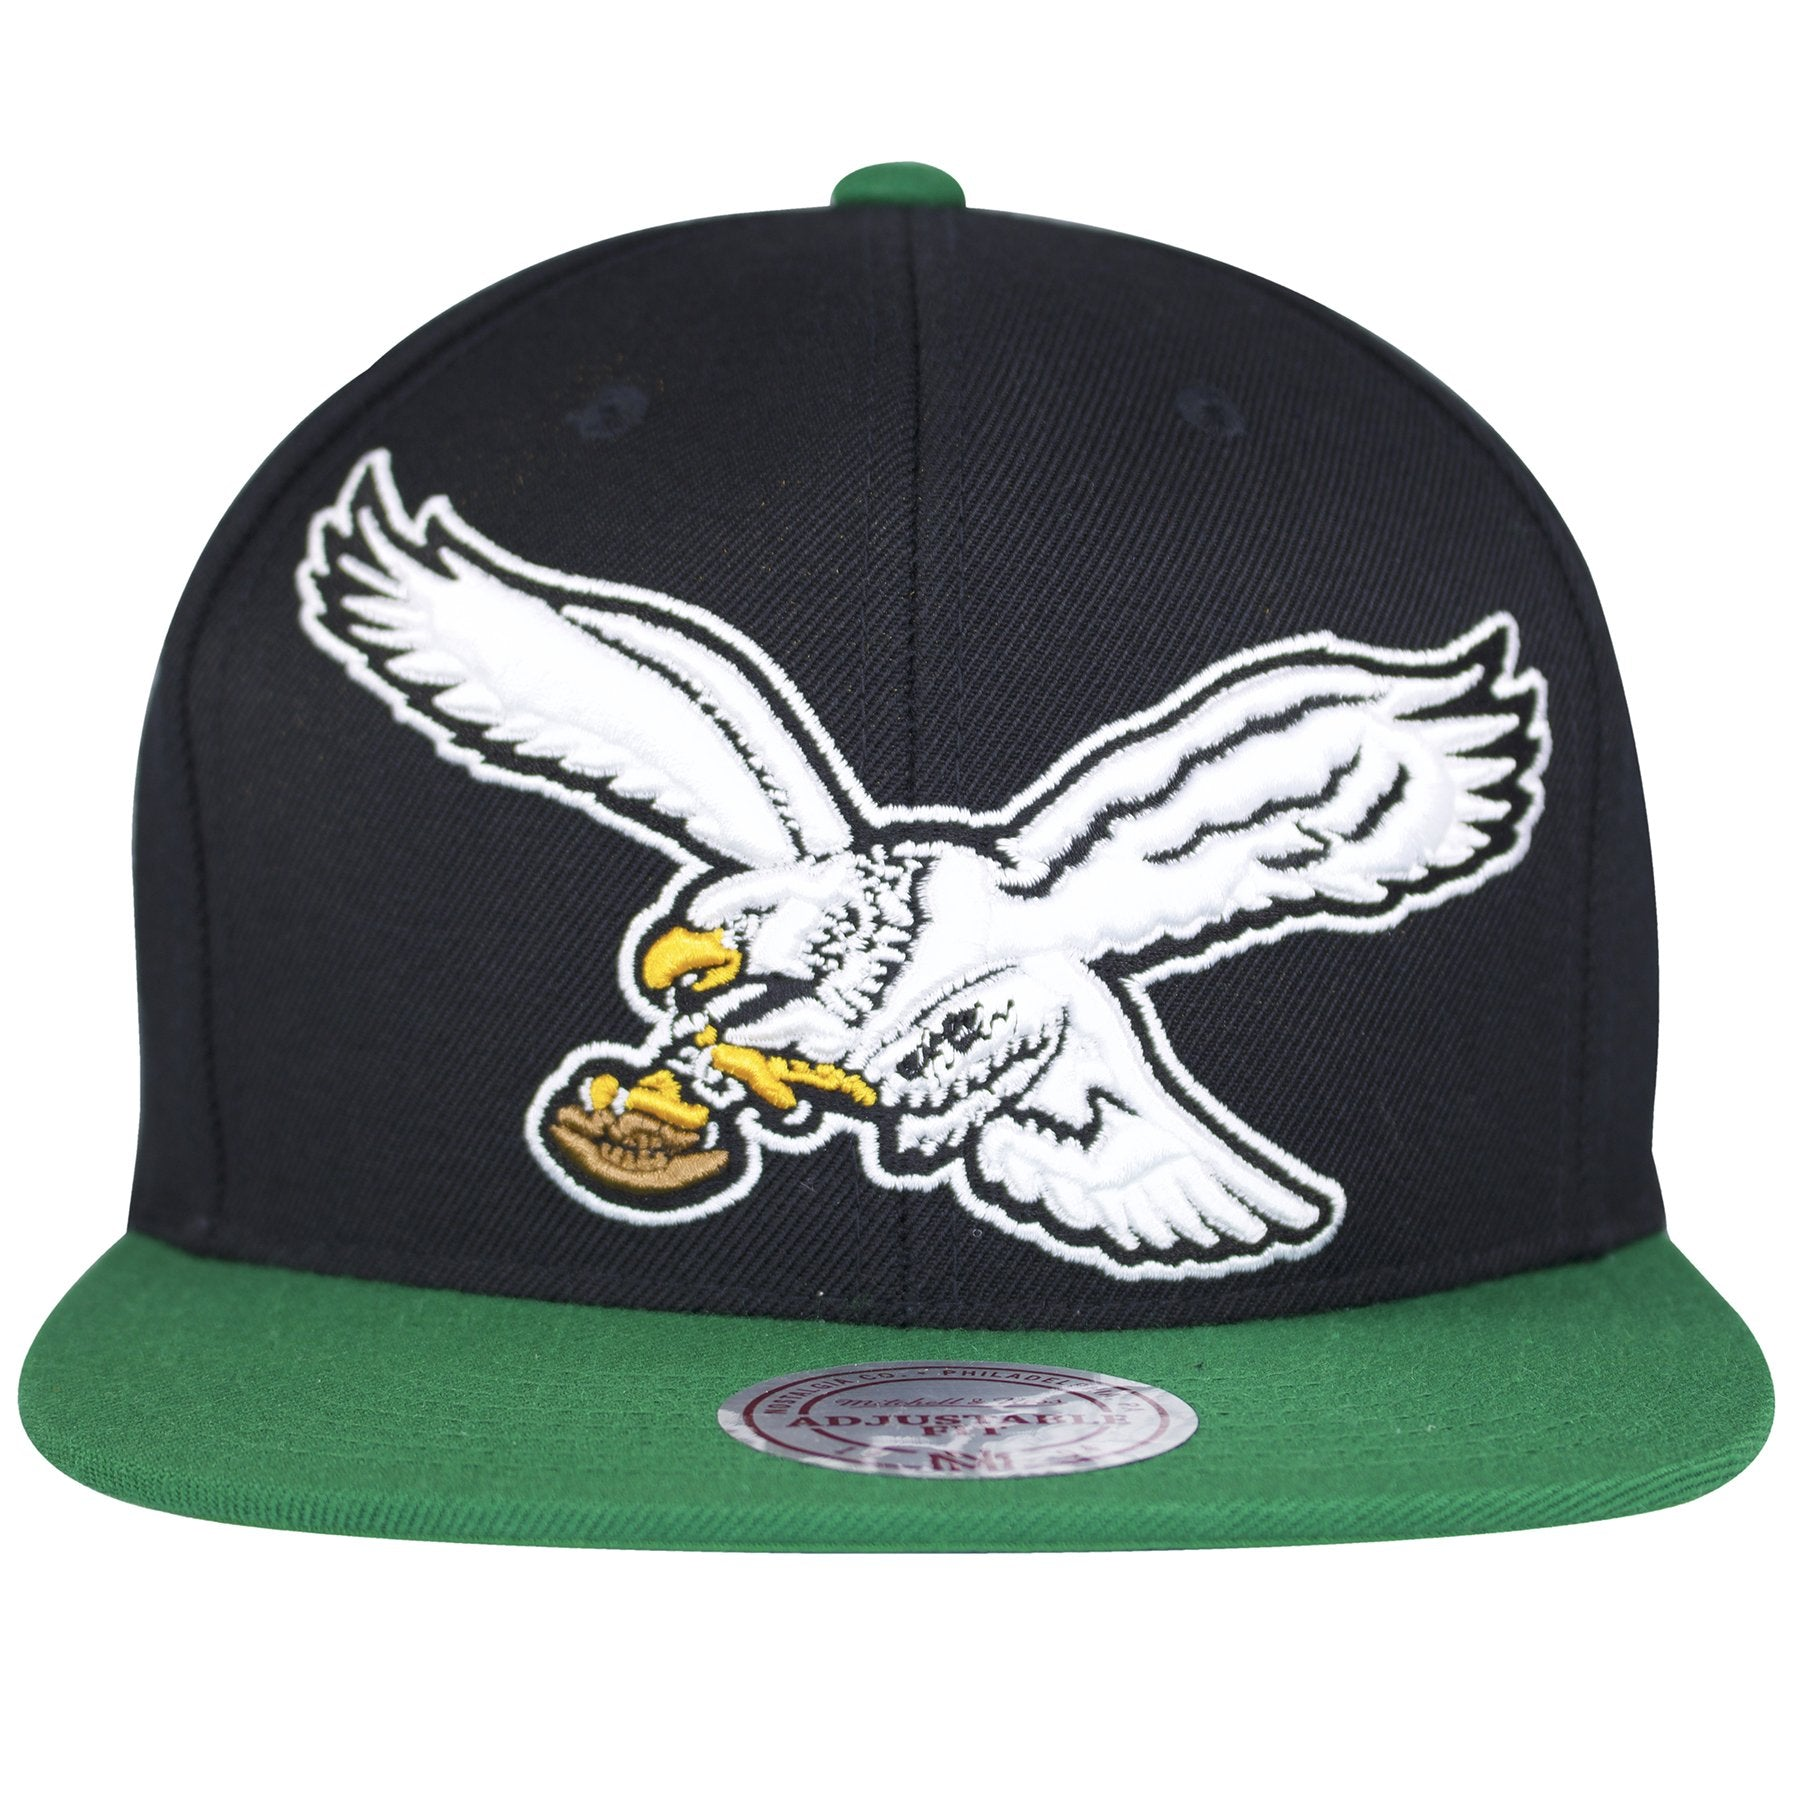 0828632ba5036 ... closeout on the front of the philadelphia eagles vintage mitchell and  ness snapback hat the throwback